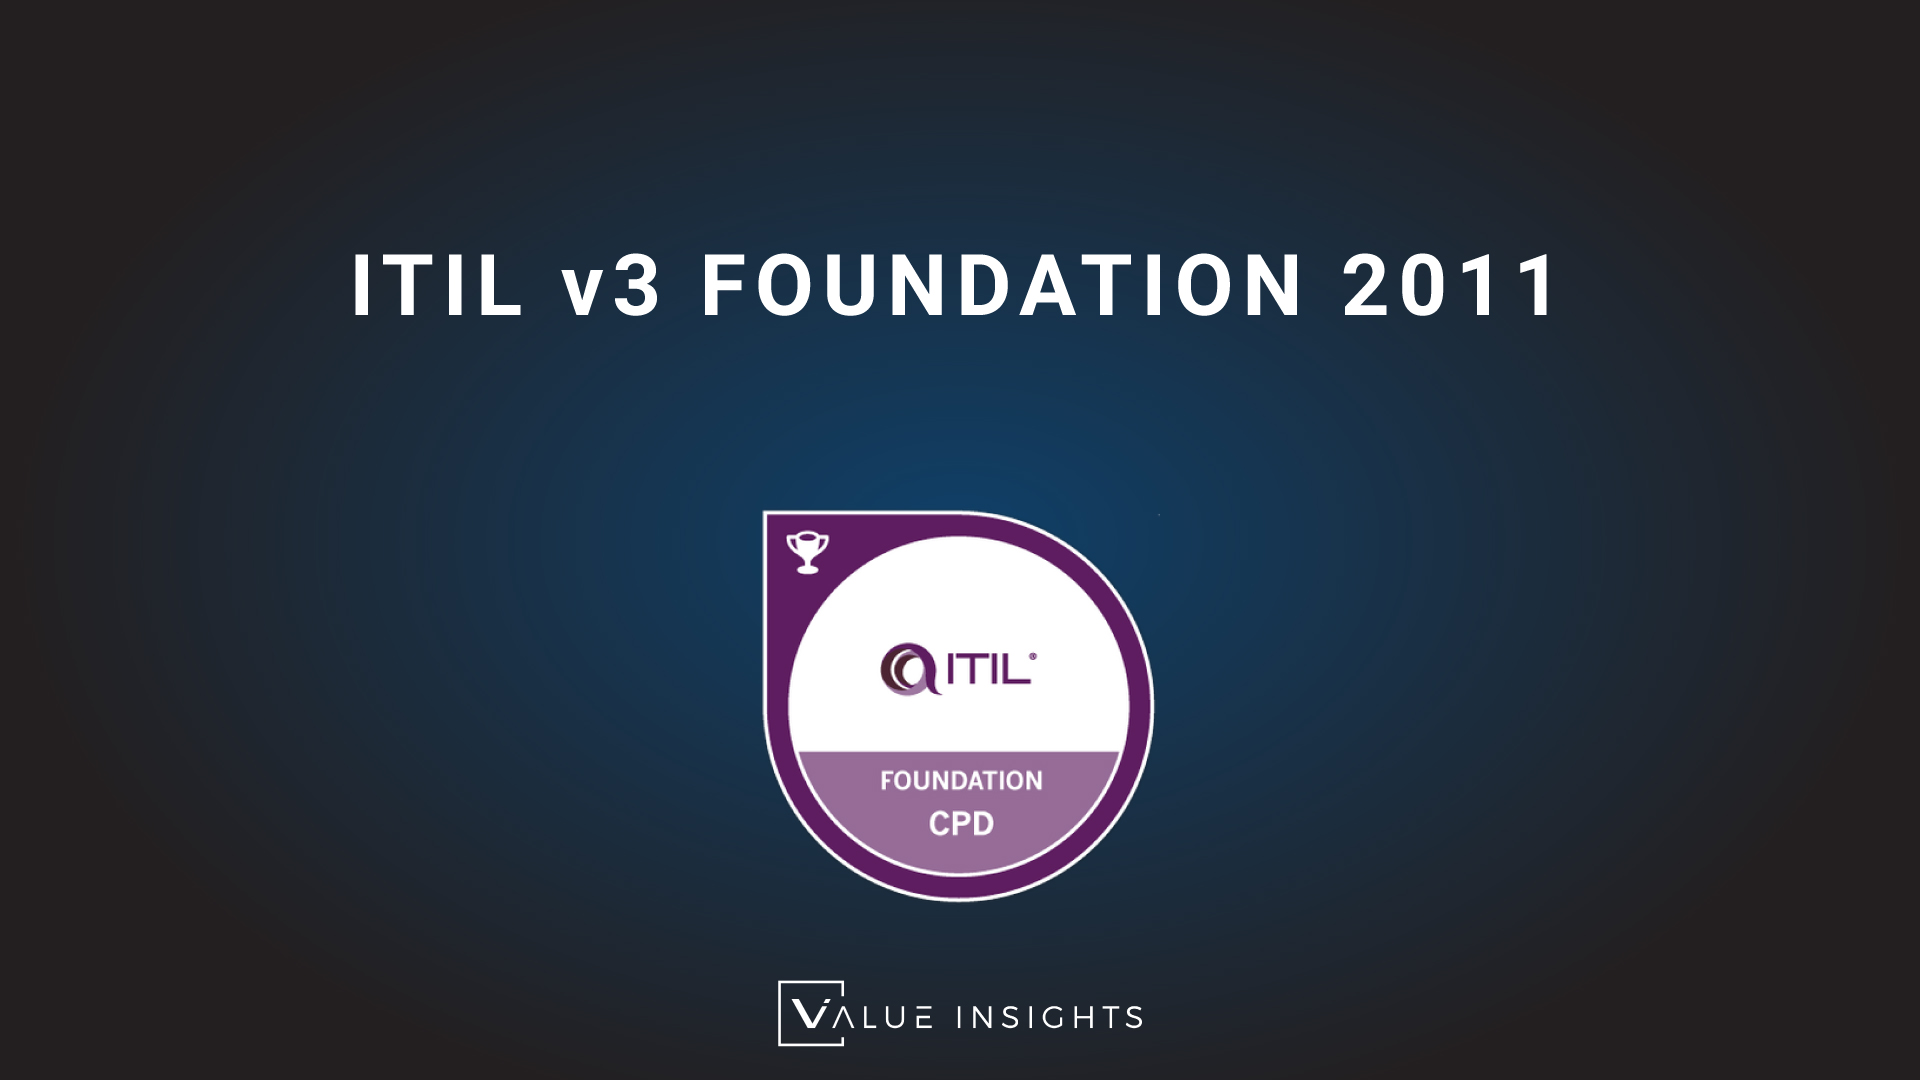 itil 3 foundation badge cpd transparent logo png